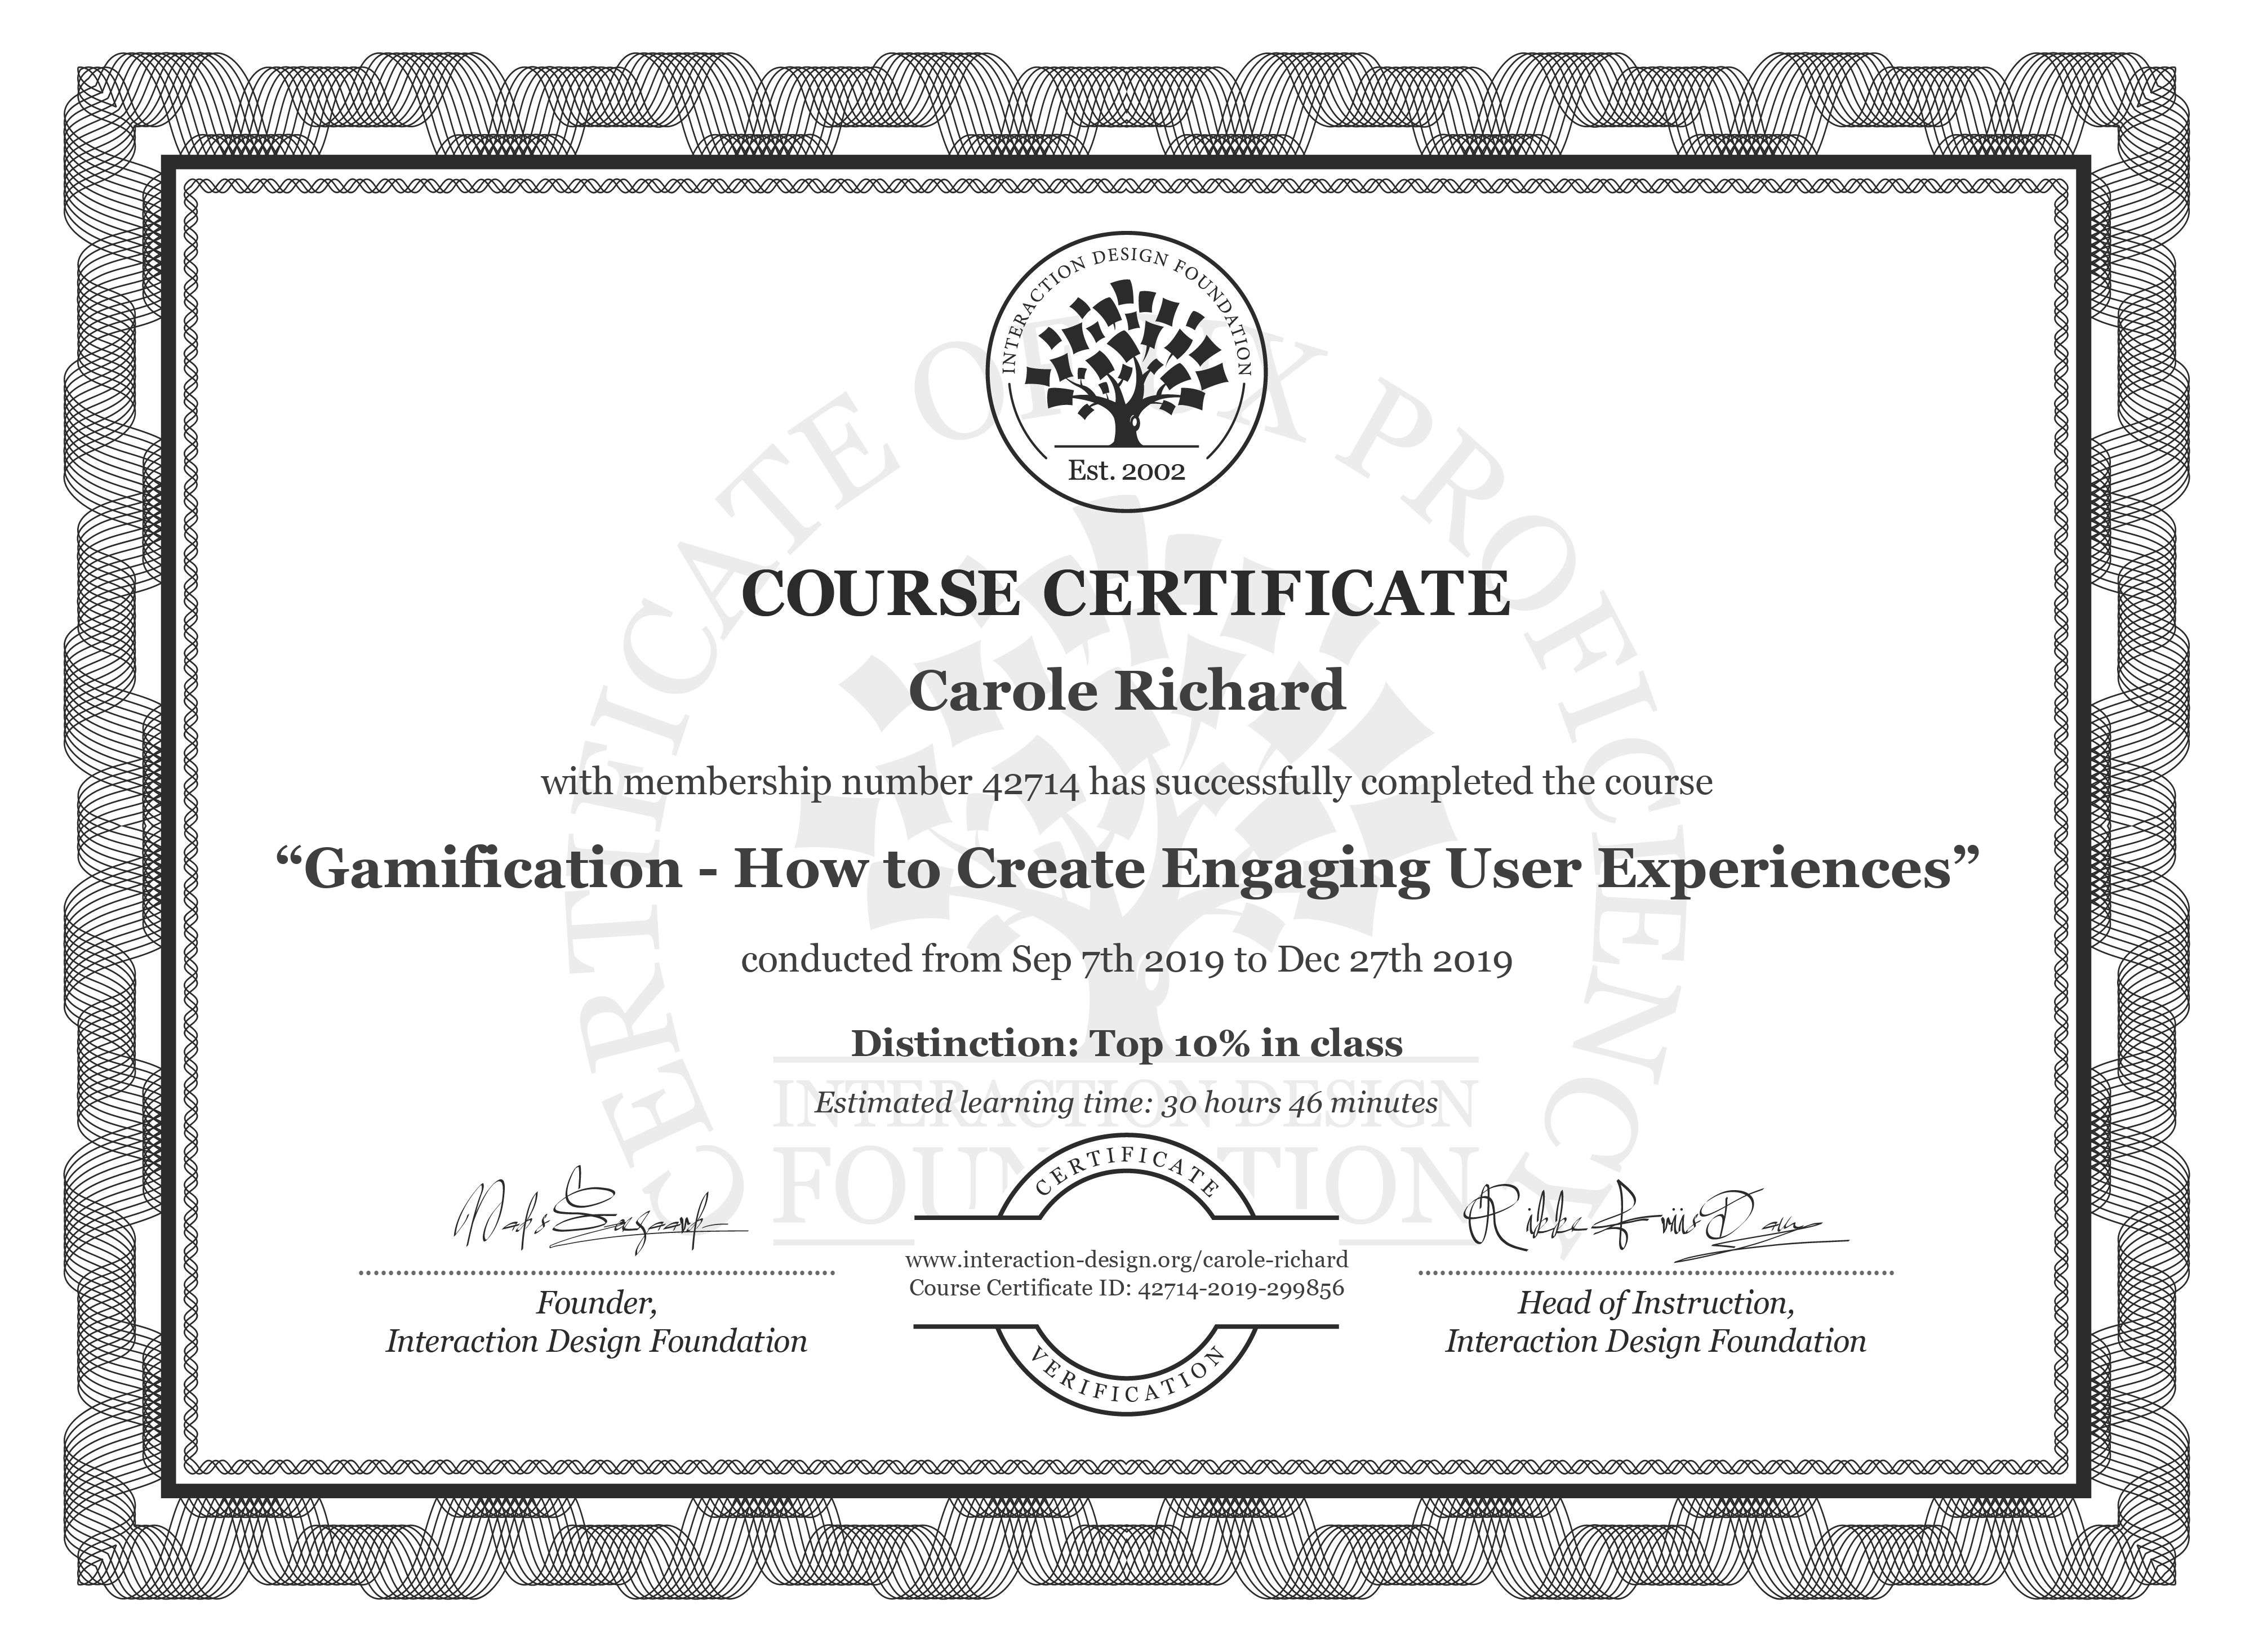 Carole Richard's Course Certificate: Gamification – Creating Addictive User Experiences